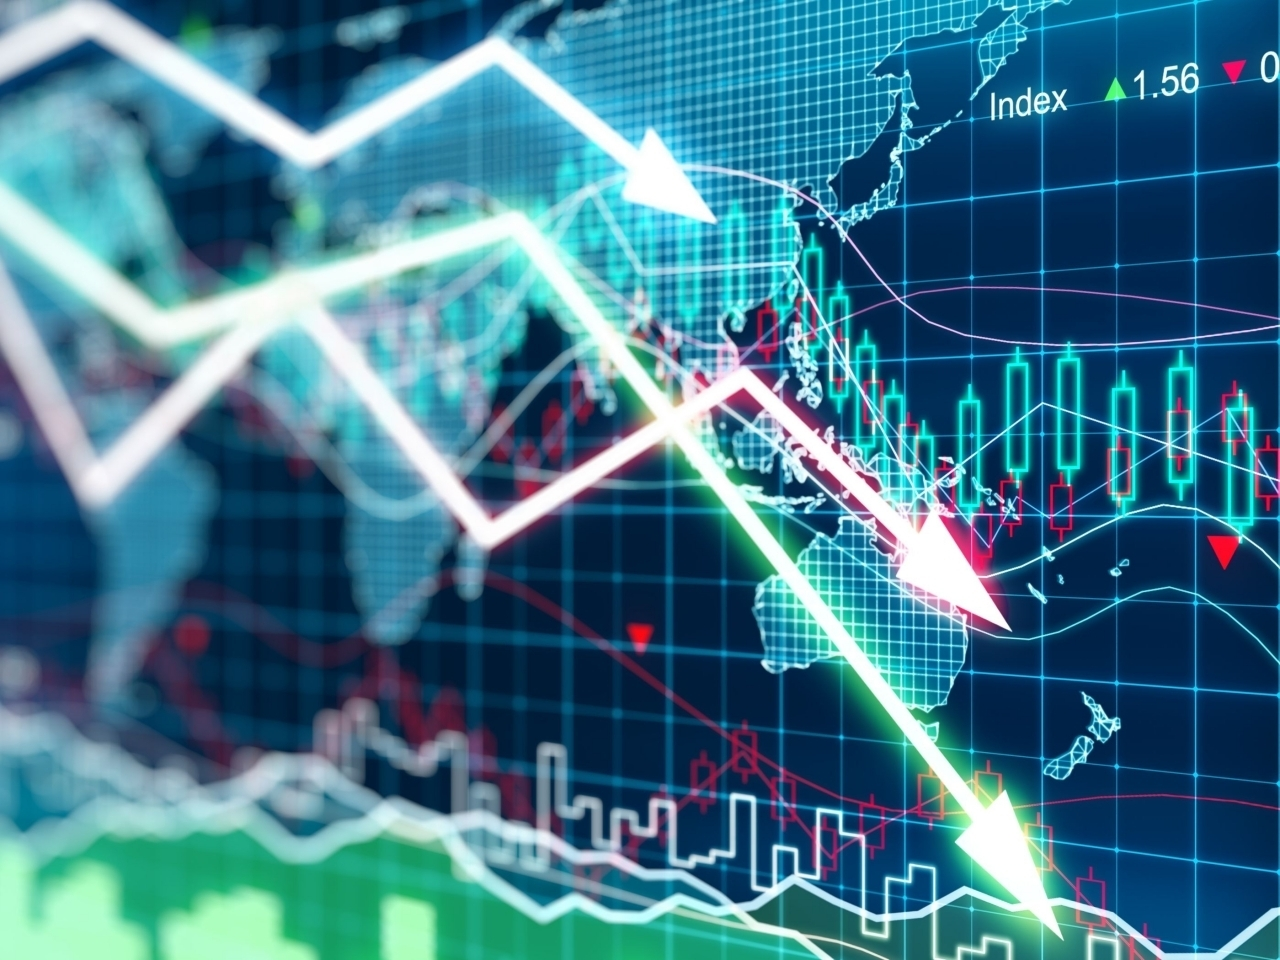 The Hang Seng Index fell 1.5 percent, or 392 points, to 25,813. Image: Shutterstock